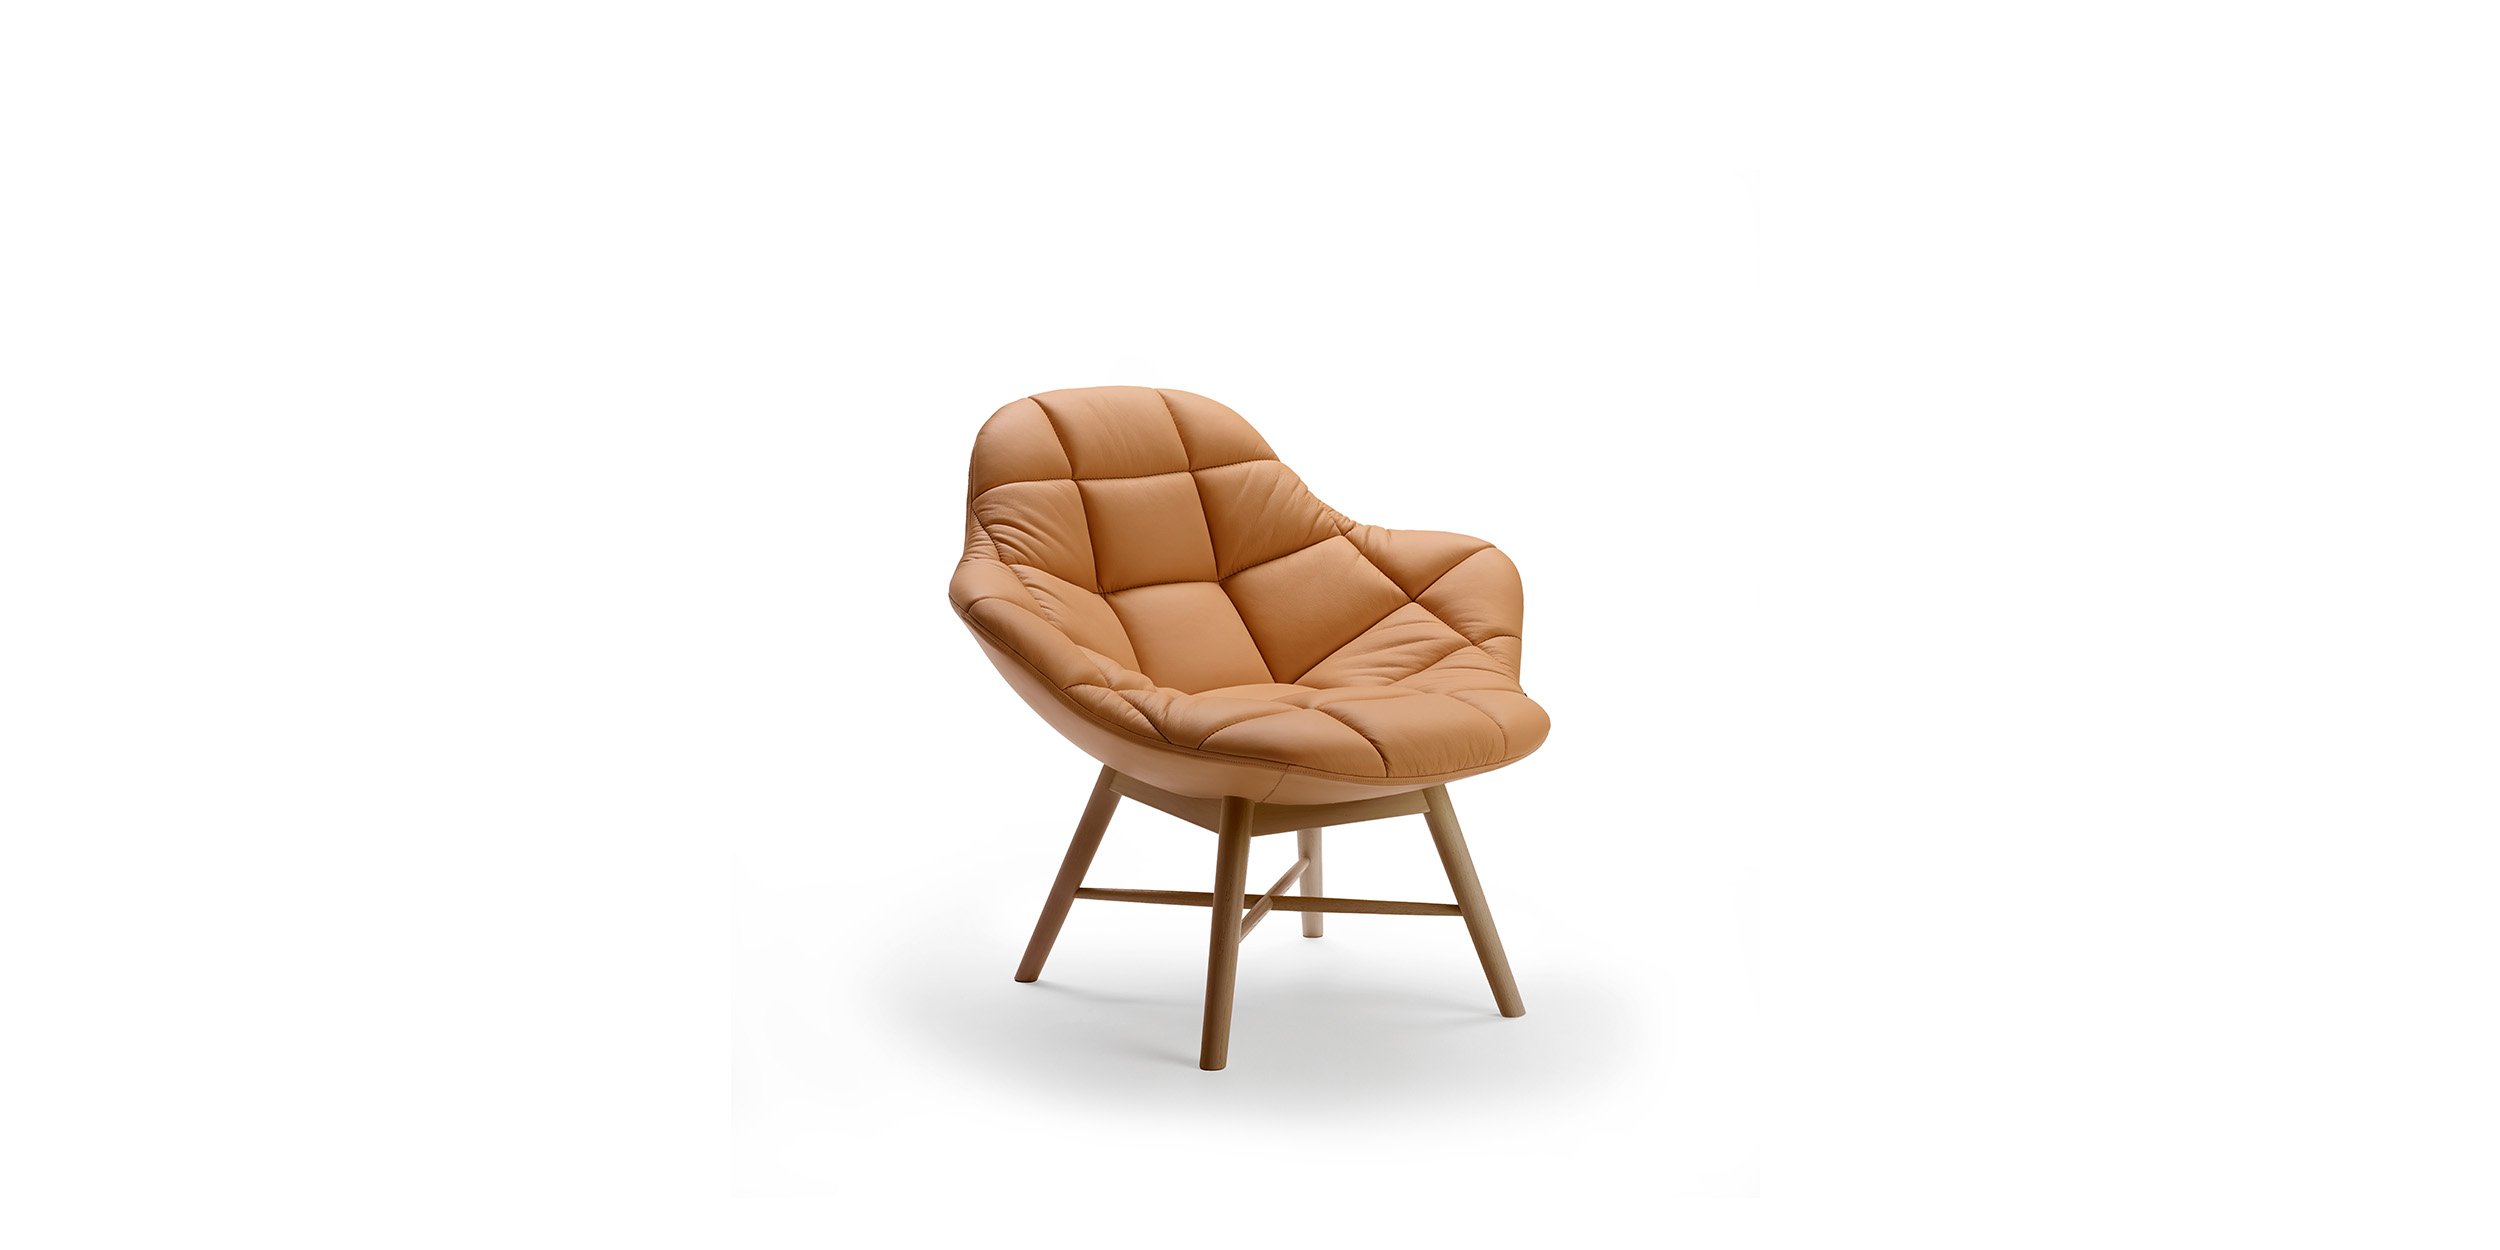 Palma Wood, Easy chair by Khodi Feiz